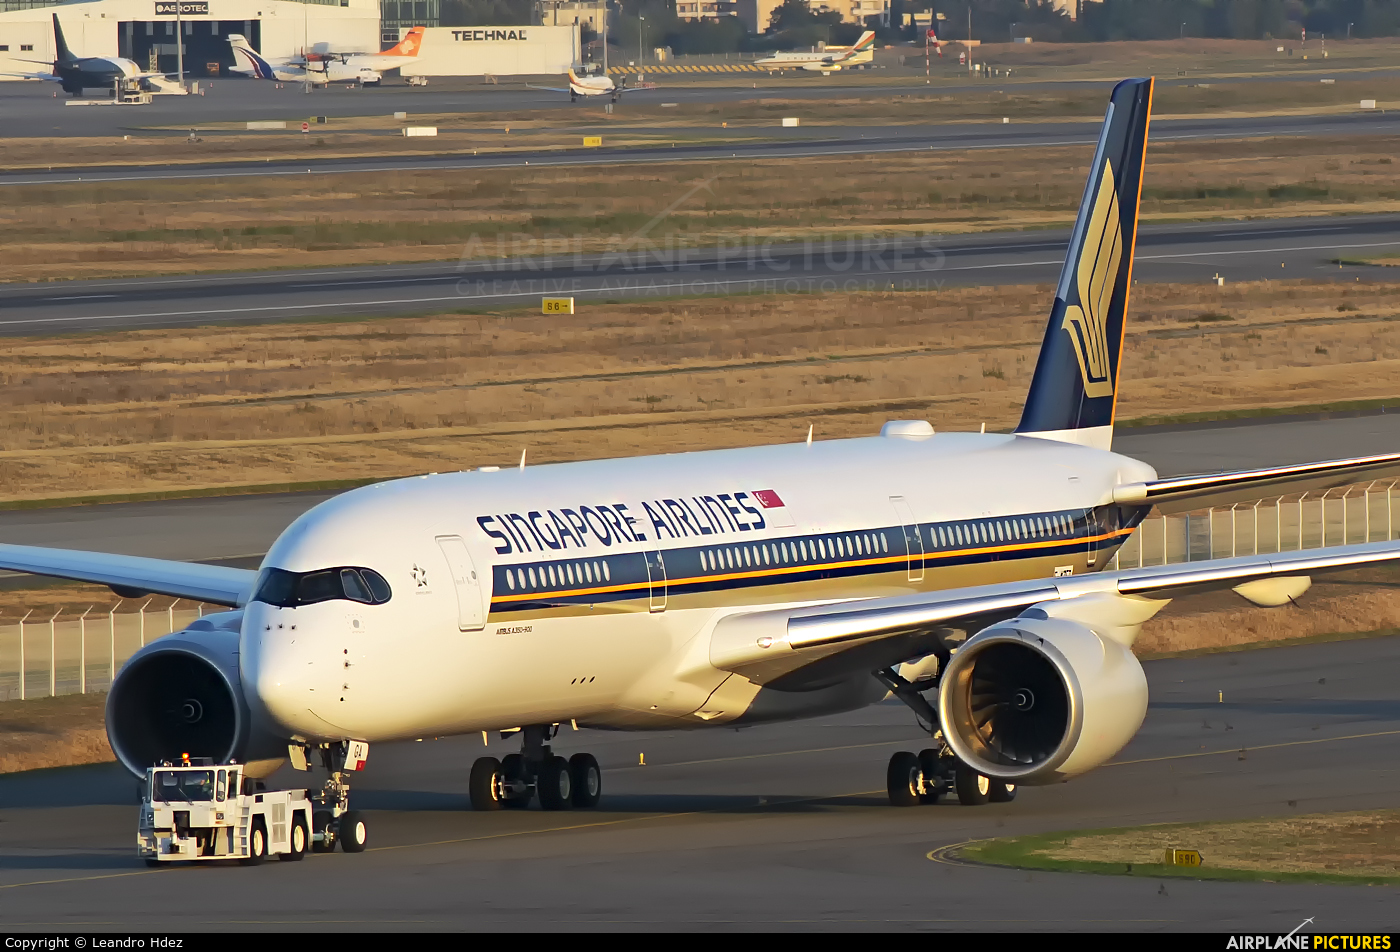 Singapore Airlines F-WZFZ aircraft at Toulouse - Blagnac